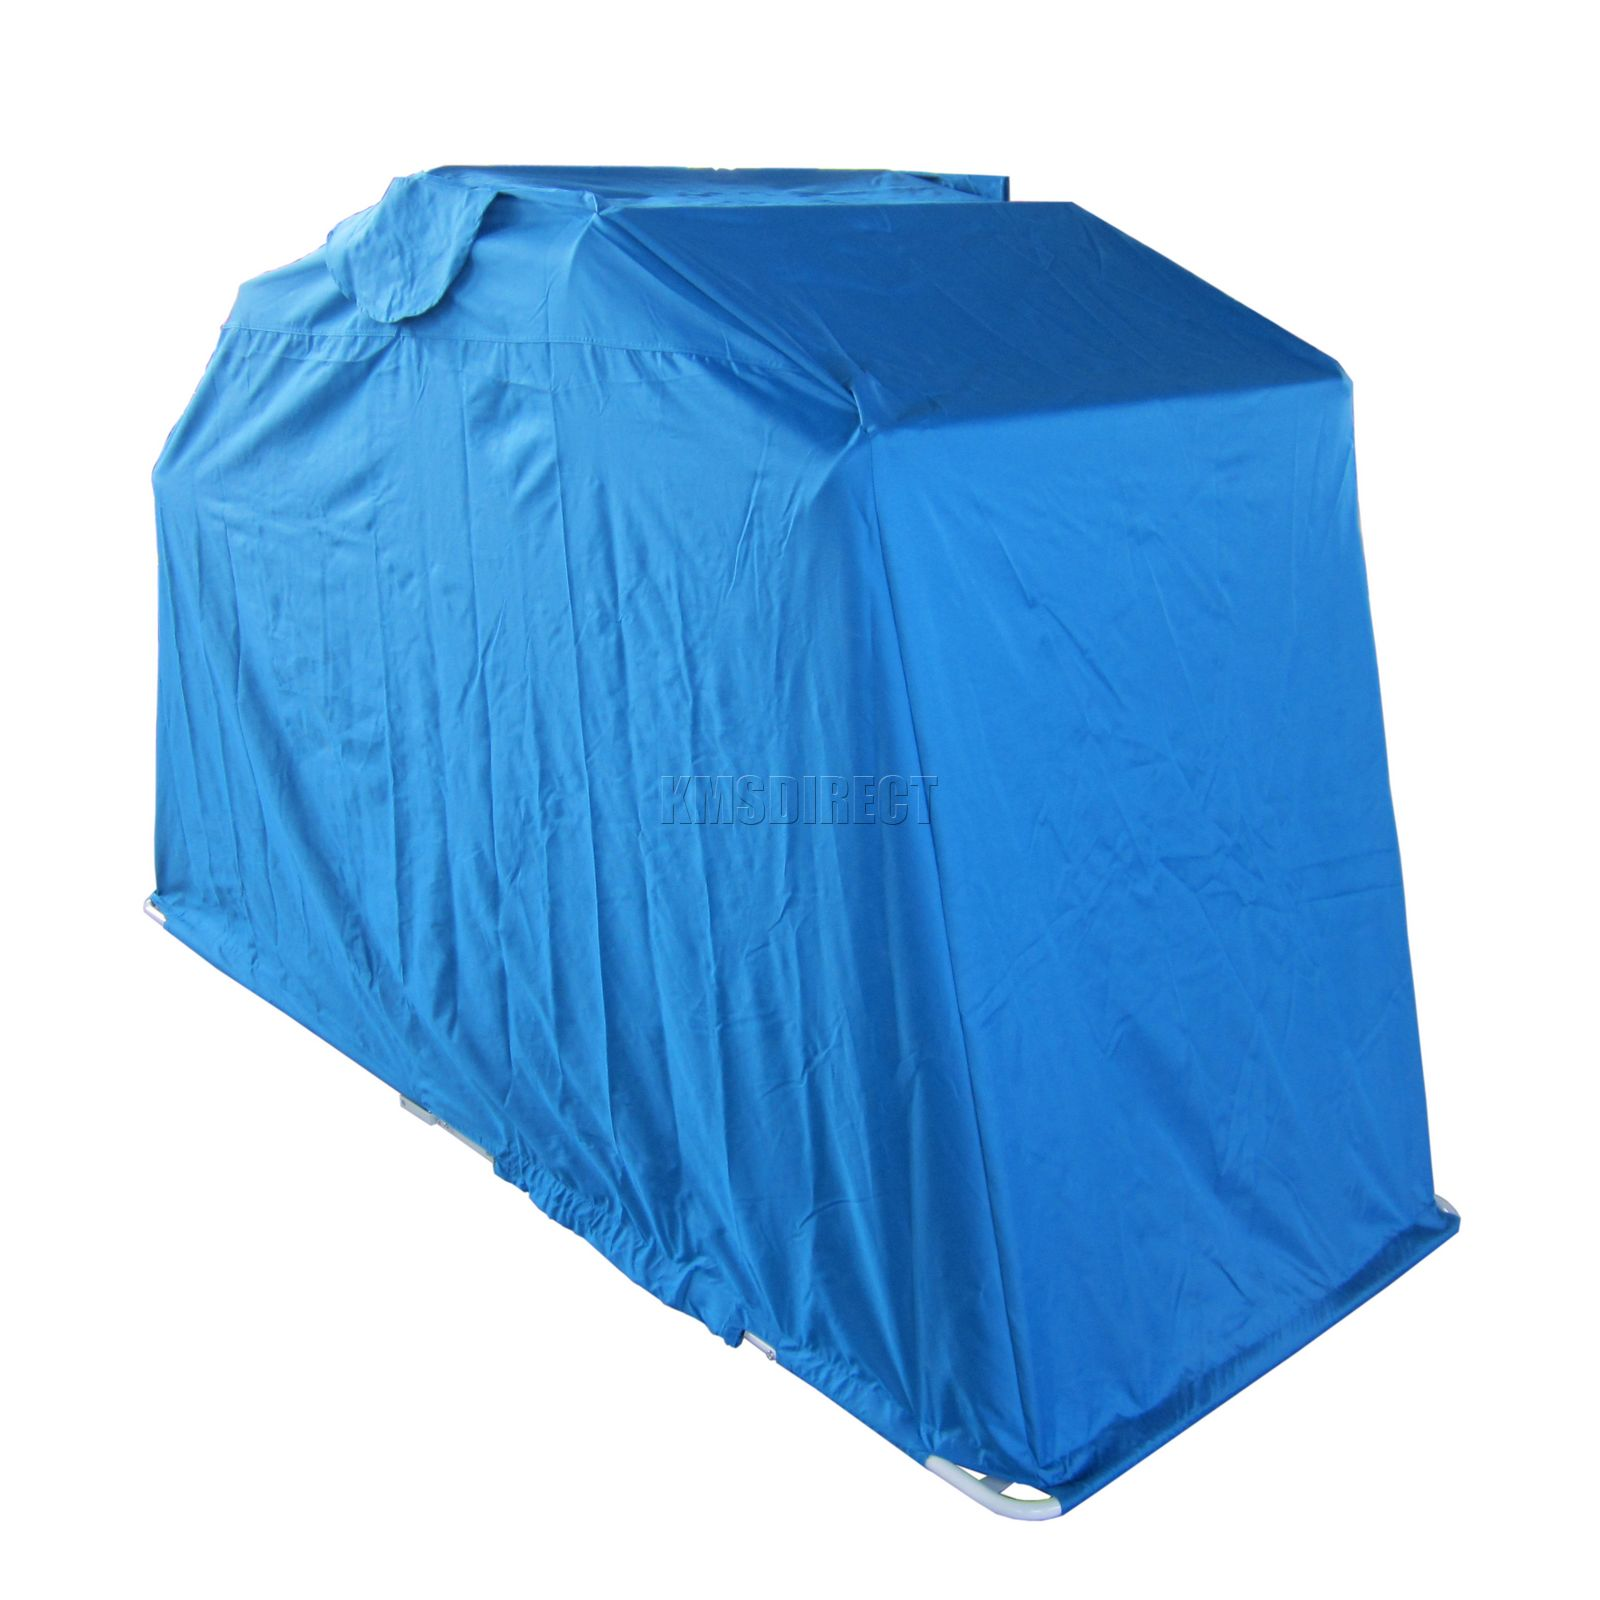 Blue motor bike folding cover storage shed waterproof outdoor tent garage medium ebay - Motorcycle foldable garage tent cover ...